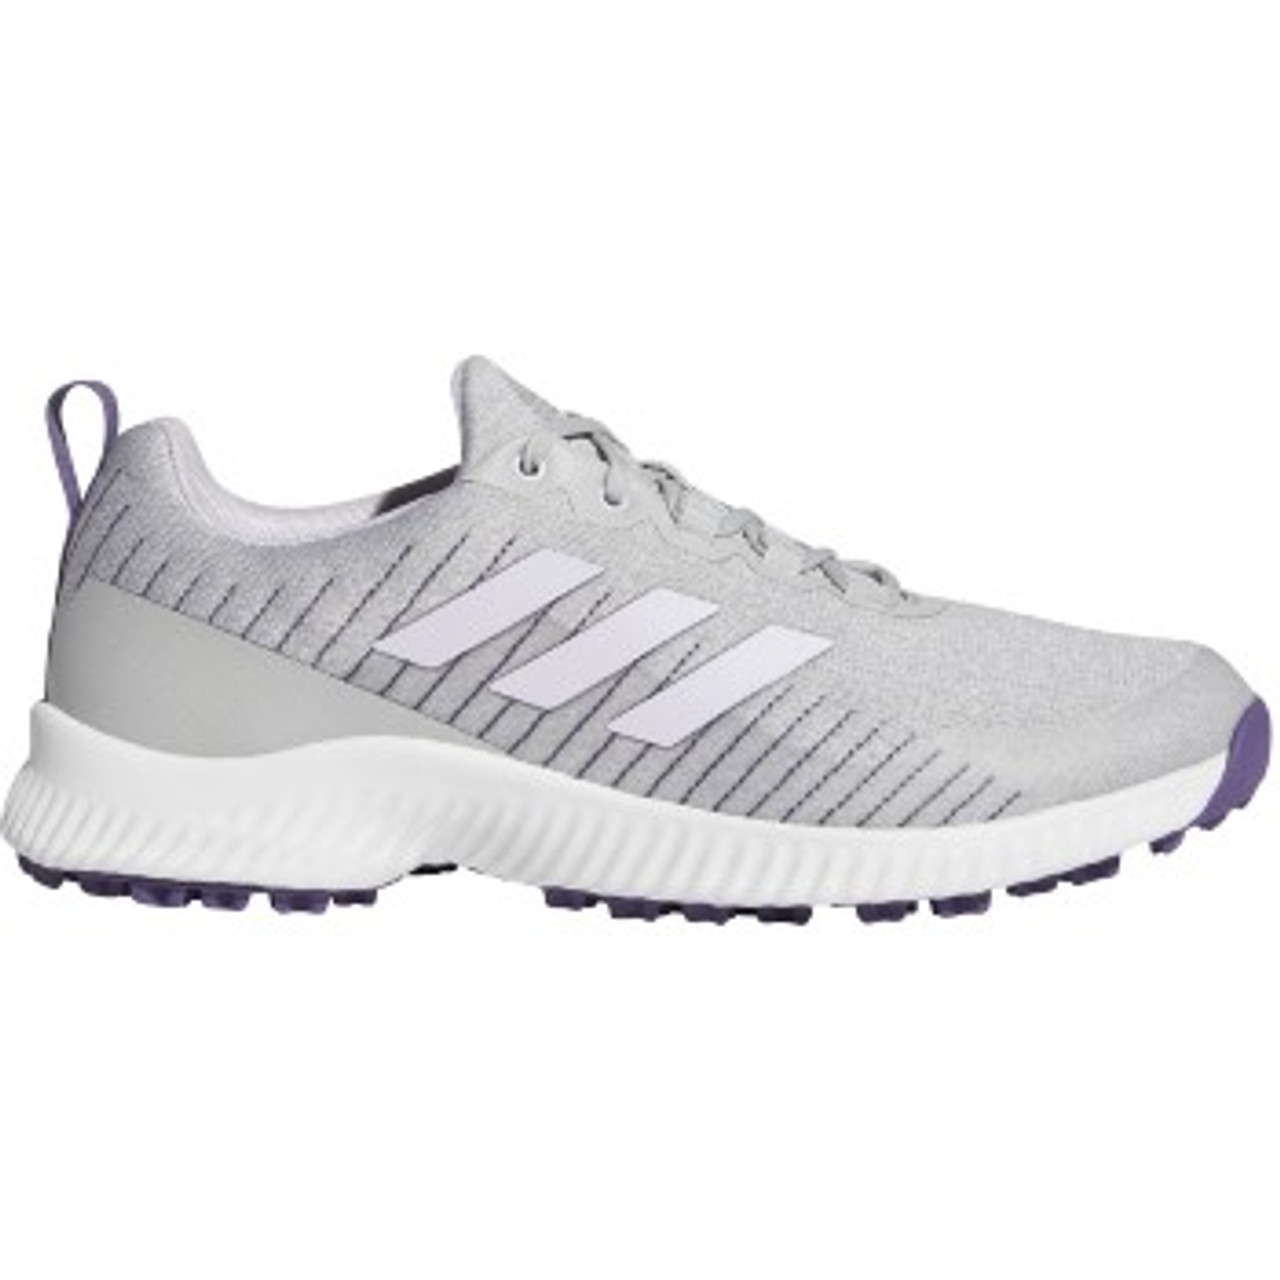 Adidas Womens Response BOUNCE 2 SL Golf Shoes - White / Purple Tint / Grey Two